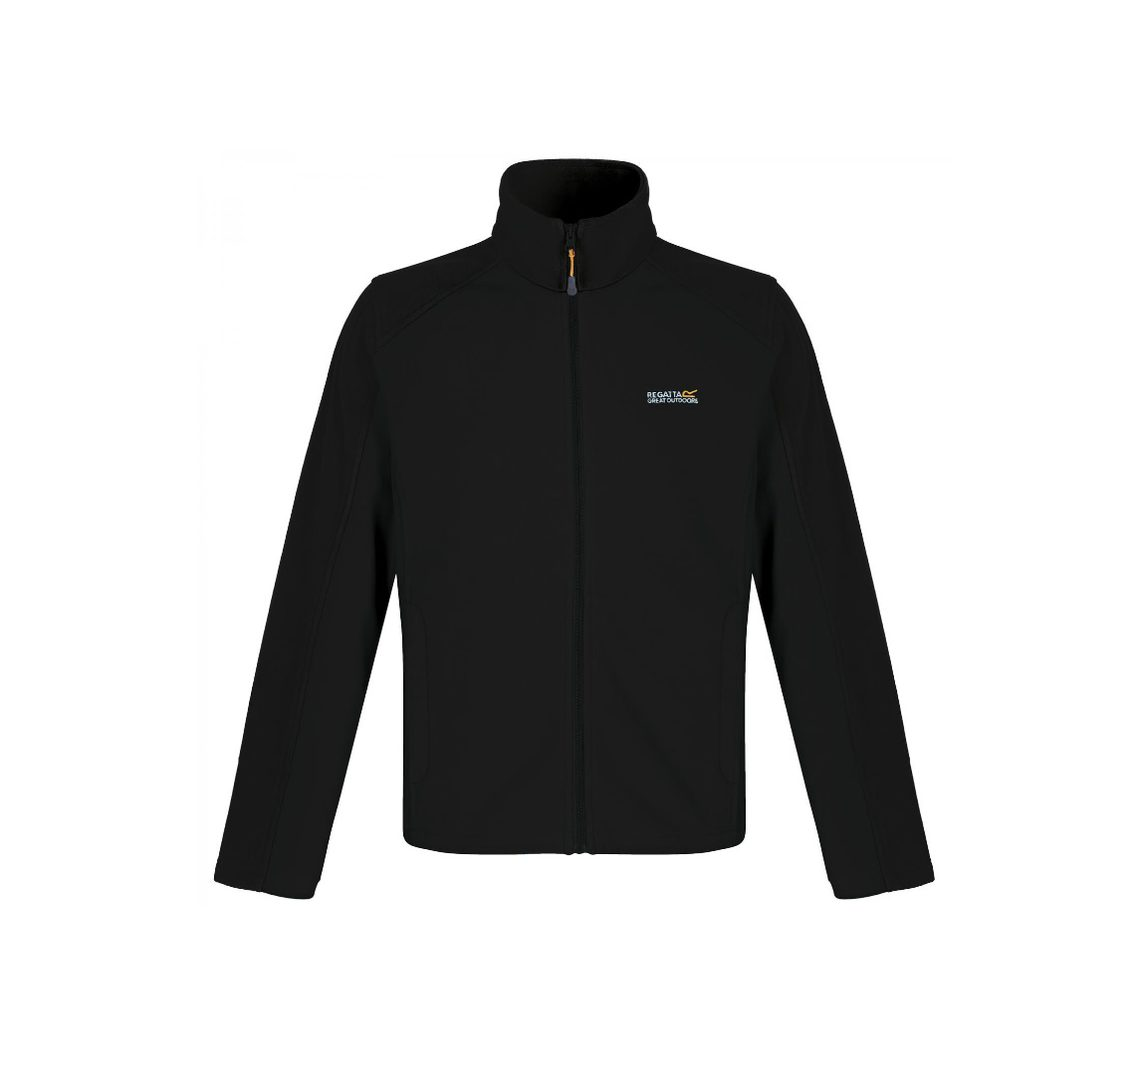 Regatta Mens Hedman fleece - black